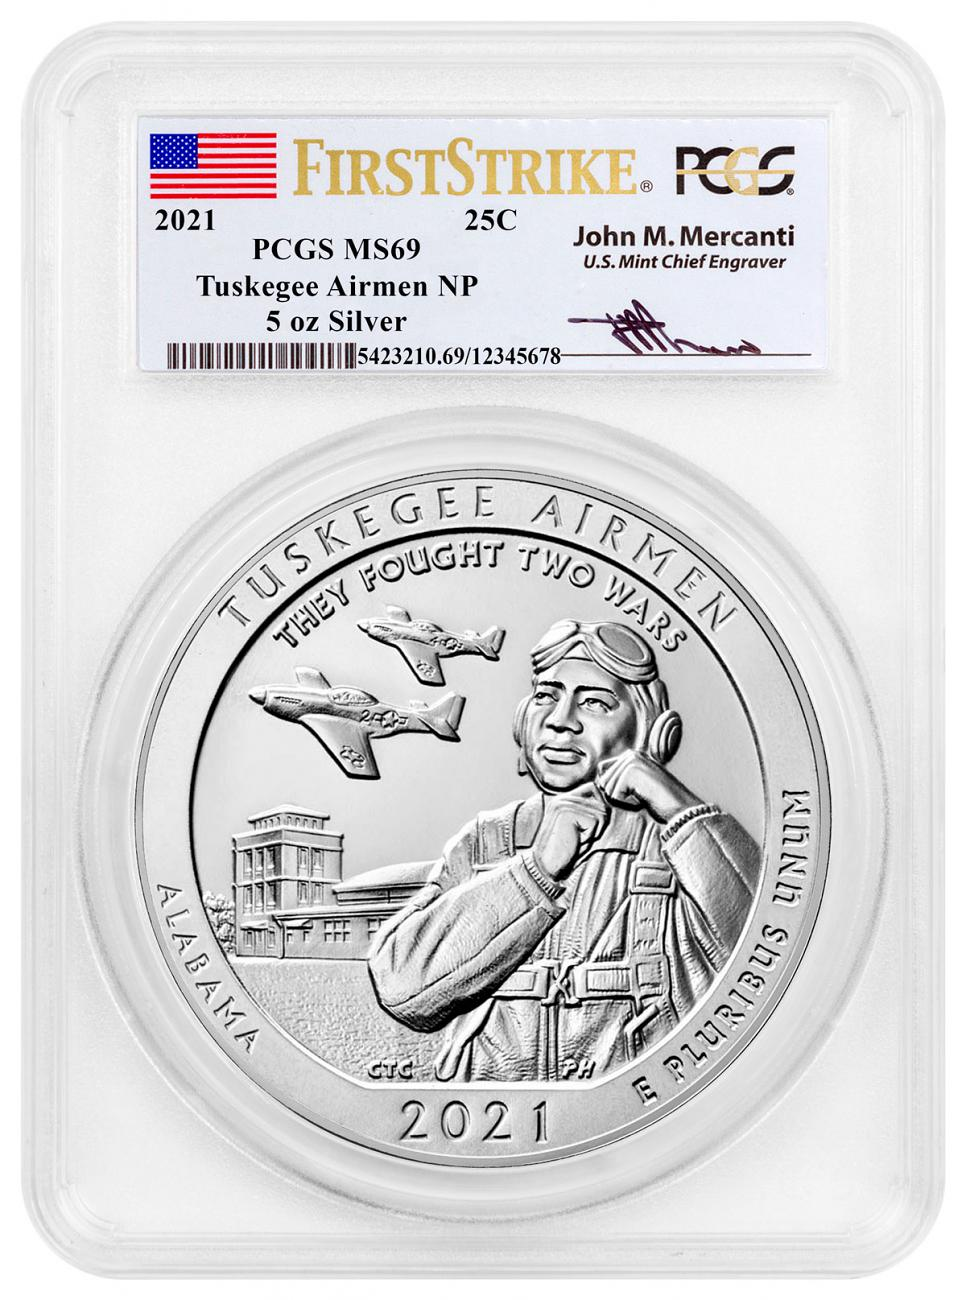 2021 Tuskegee Airmen National Historic Site 5 oz. Silver ATB America the Beautiful Coin PCGS MS69 FS Exclusive Mercanti Signed Label